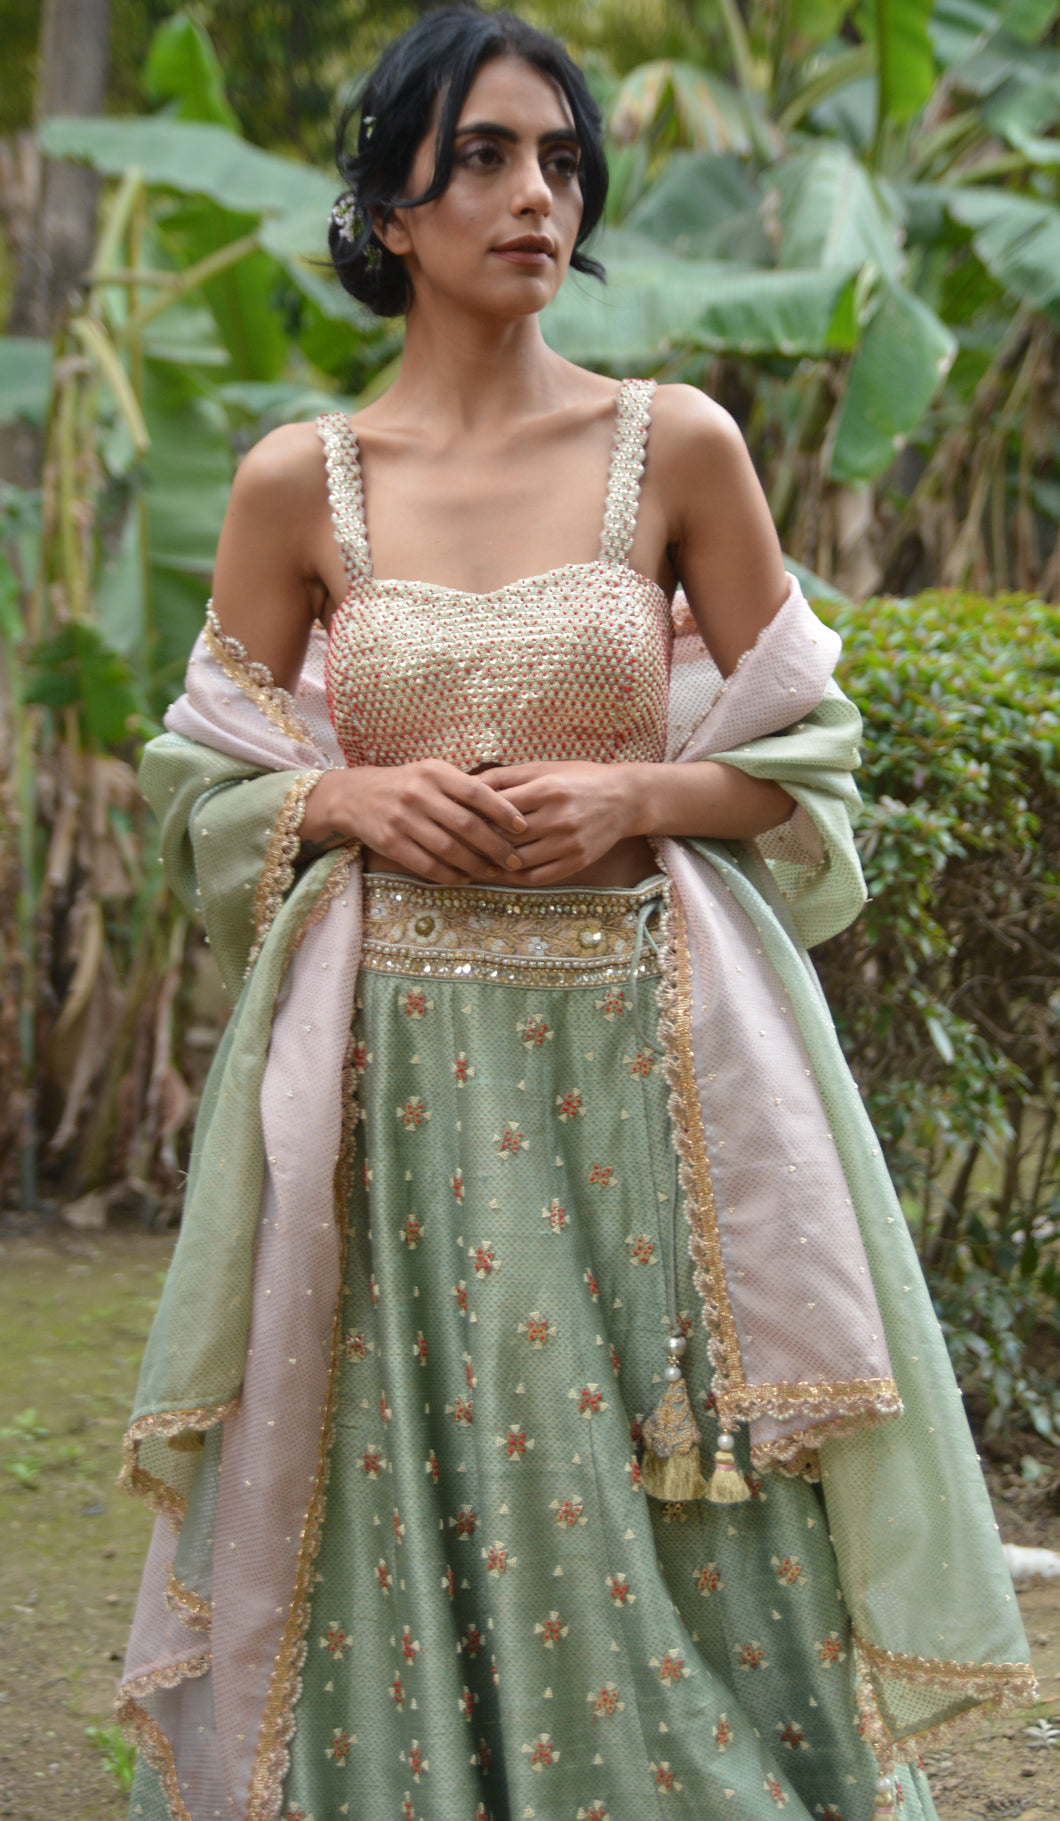 LEATHER BOOTI BUSITER  AND LEHENGA